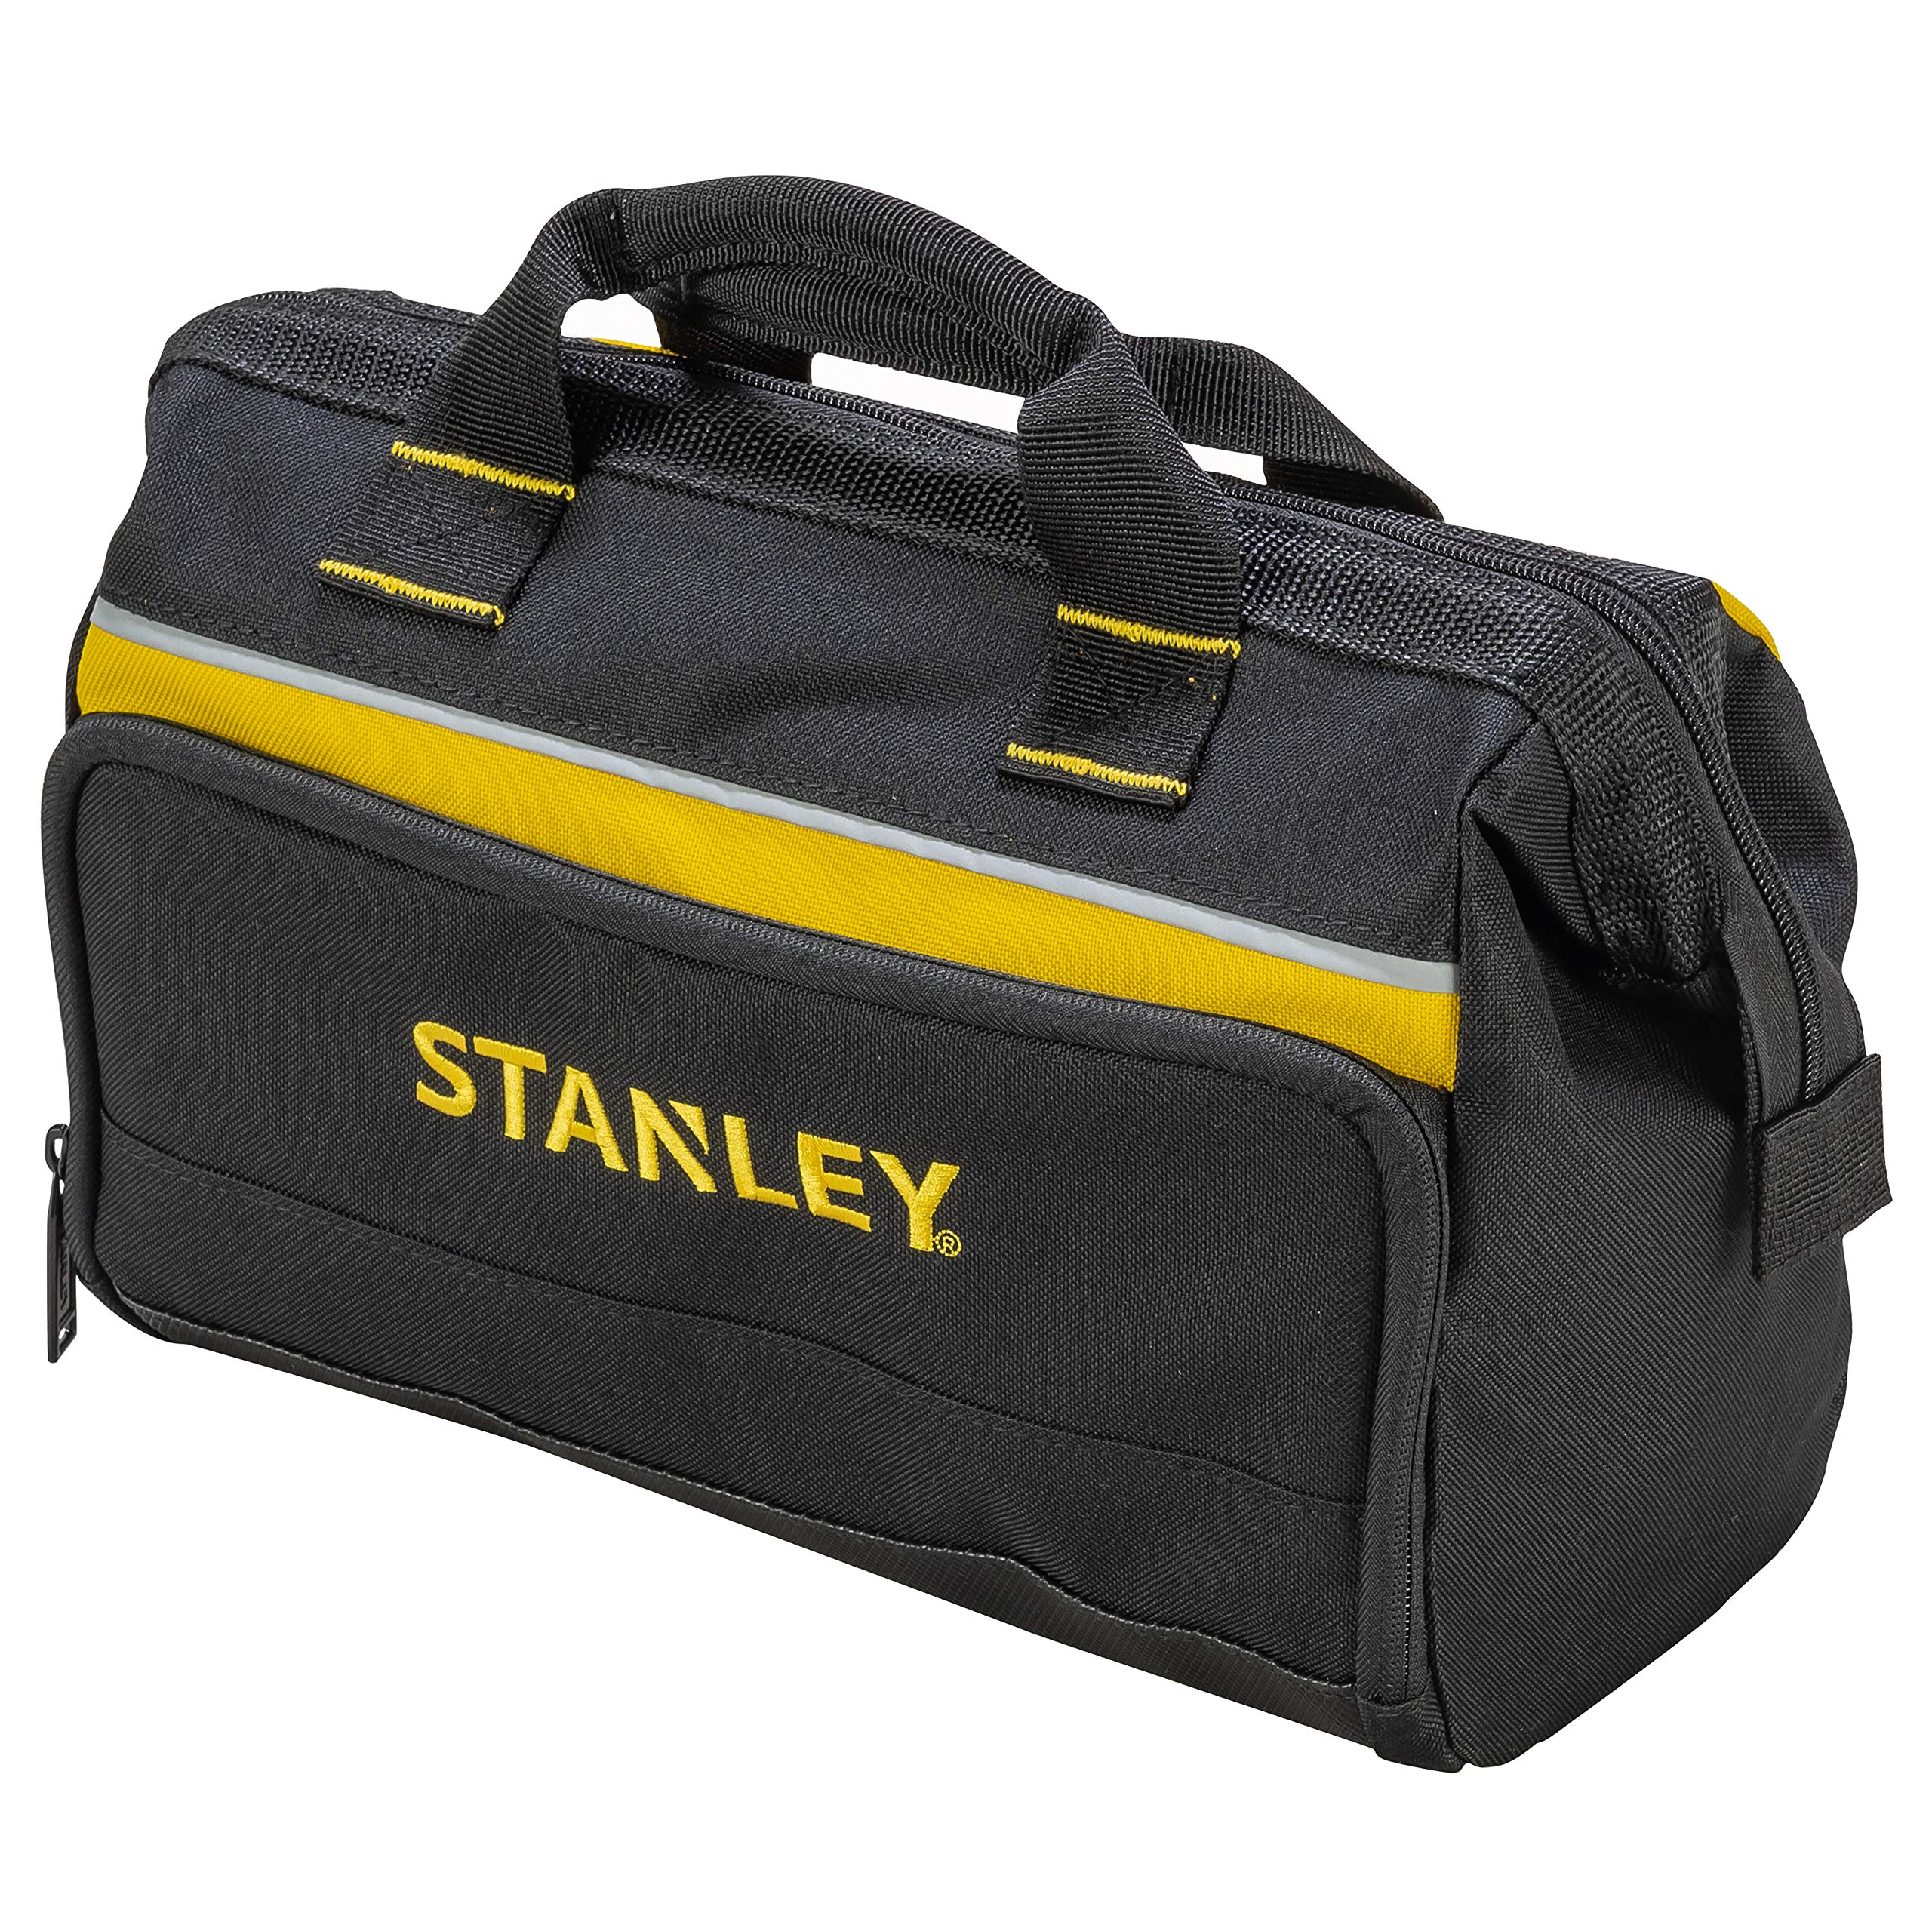 Stanley Open Mouth Tool Bag For Drill And Tools Multi Pockets Storage Organiser 1 93 330 Amazon Co Uk Diy Tools